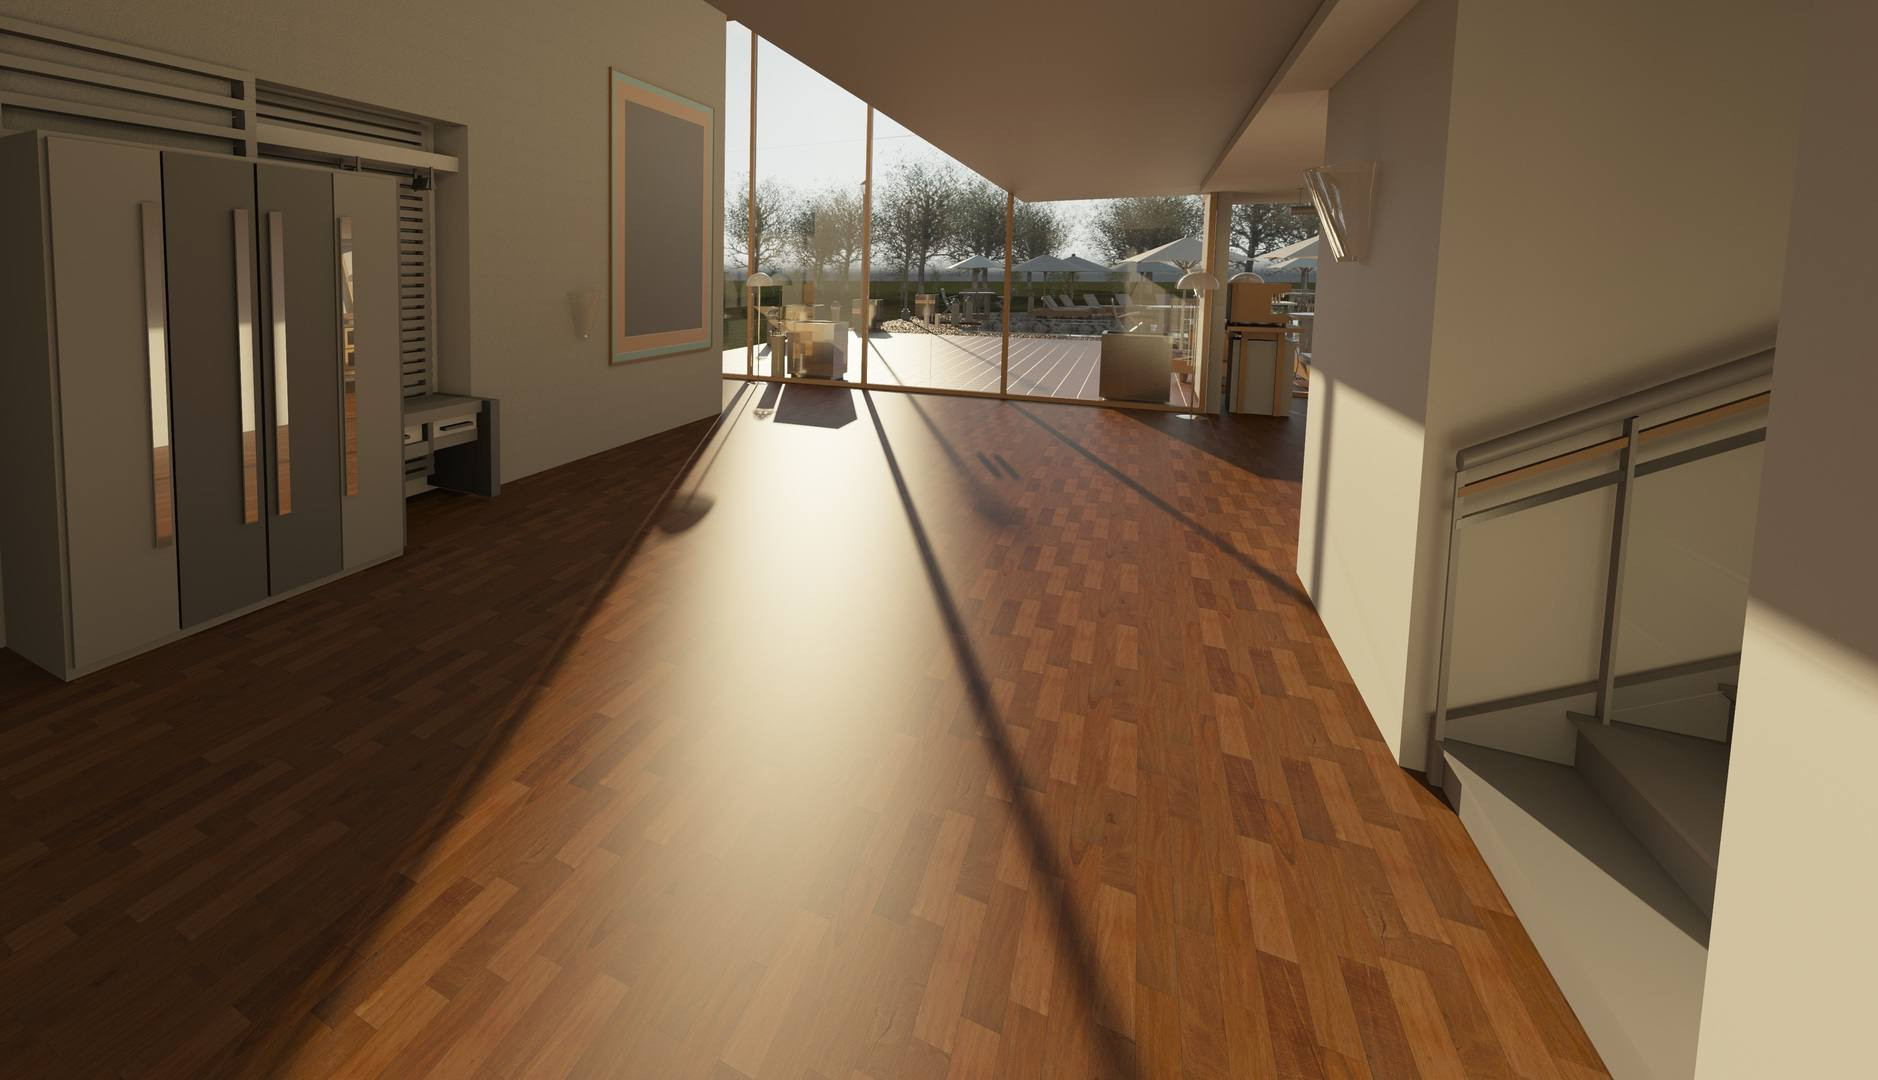 Popular Types Of Hardwood Floors Of Common Flooring Types Currently Used In Renovation and Building Intended for Architecture Wood House Floor Interior Window 917178 Pxhere Com 5ba27a2cc9e77c00503b27b9